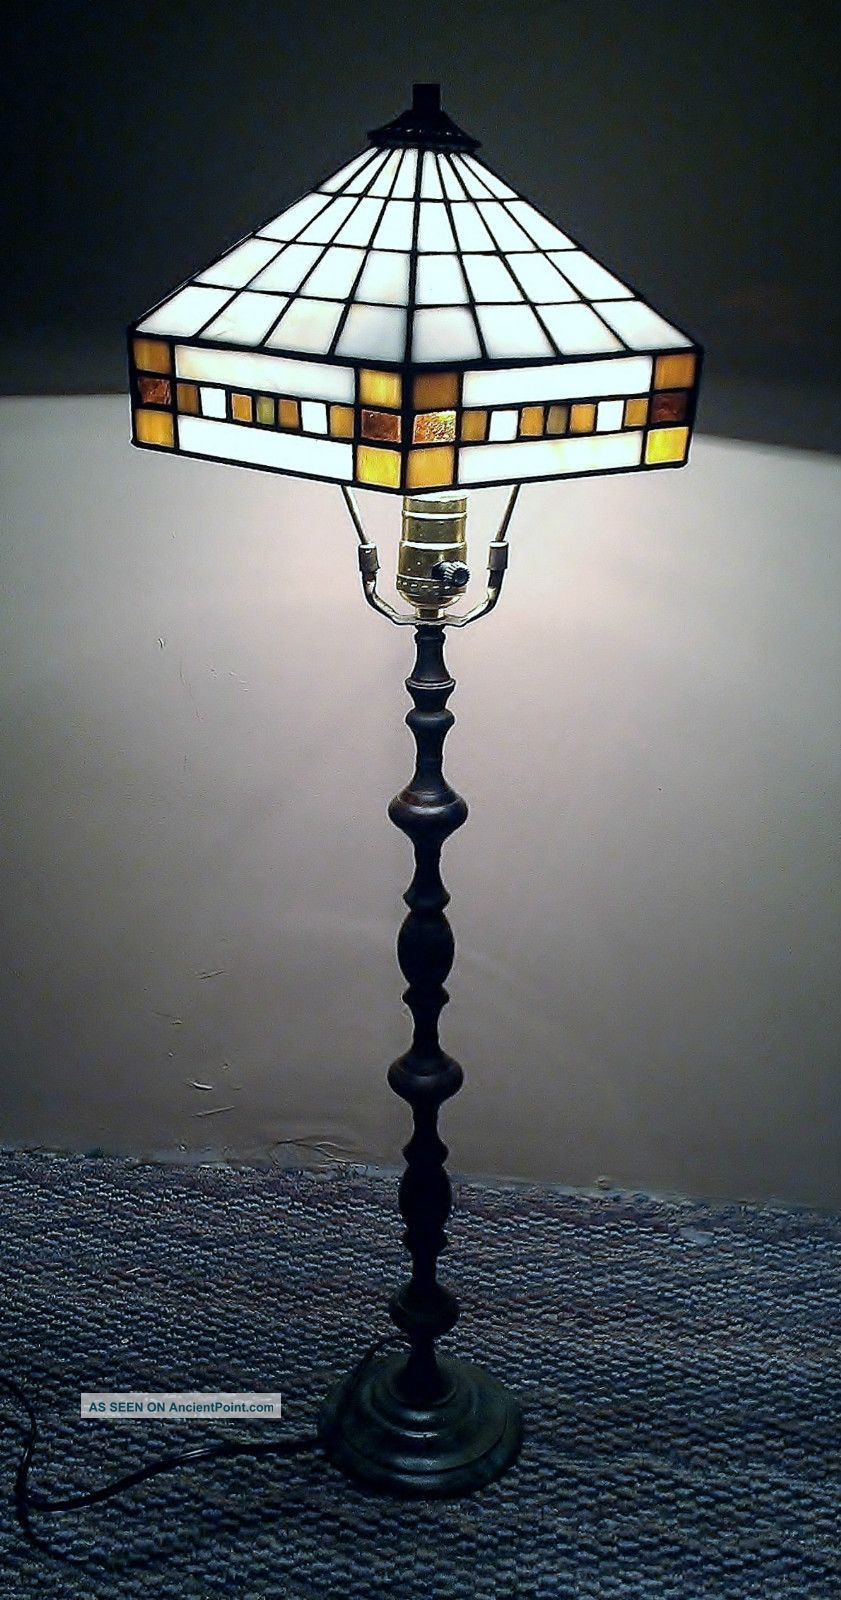 Vintage Stained Glass Tiffany Style Shade With Slender Bronze Lamp Stand Lamps photo